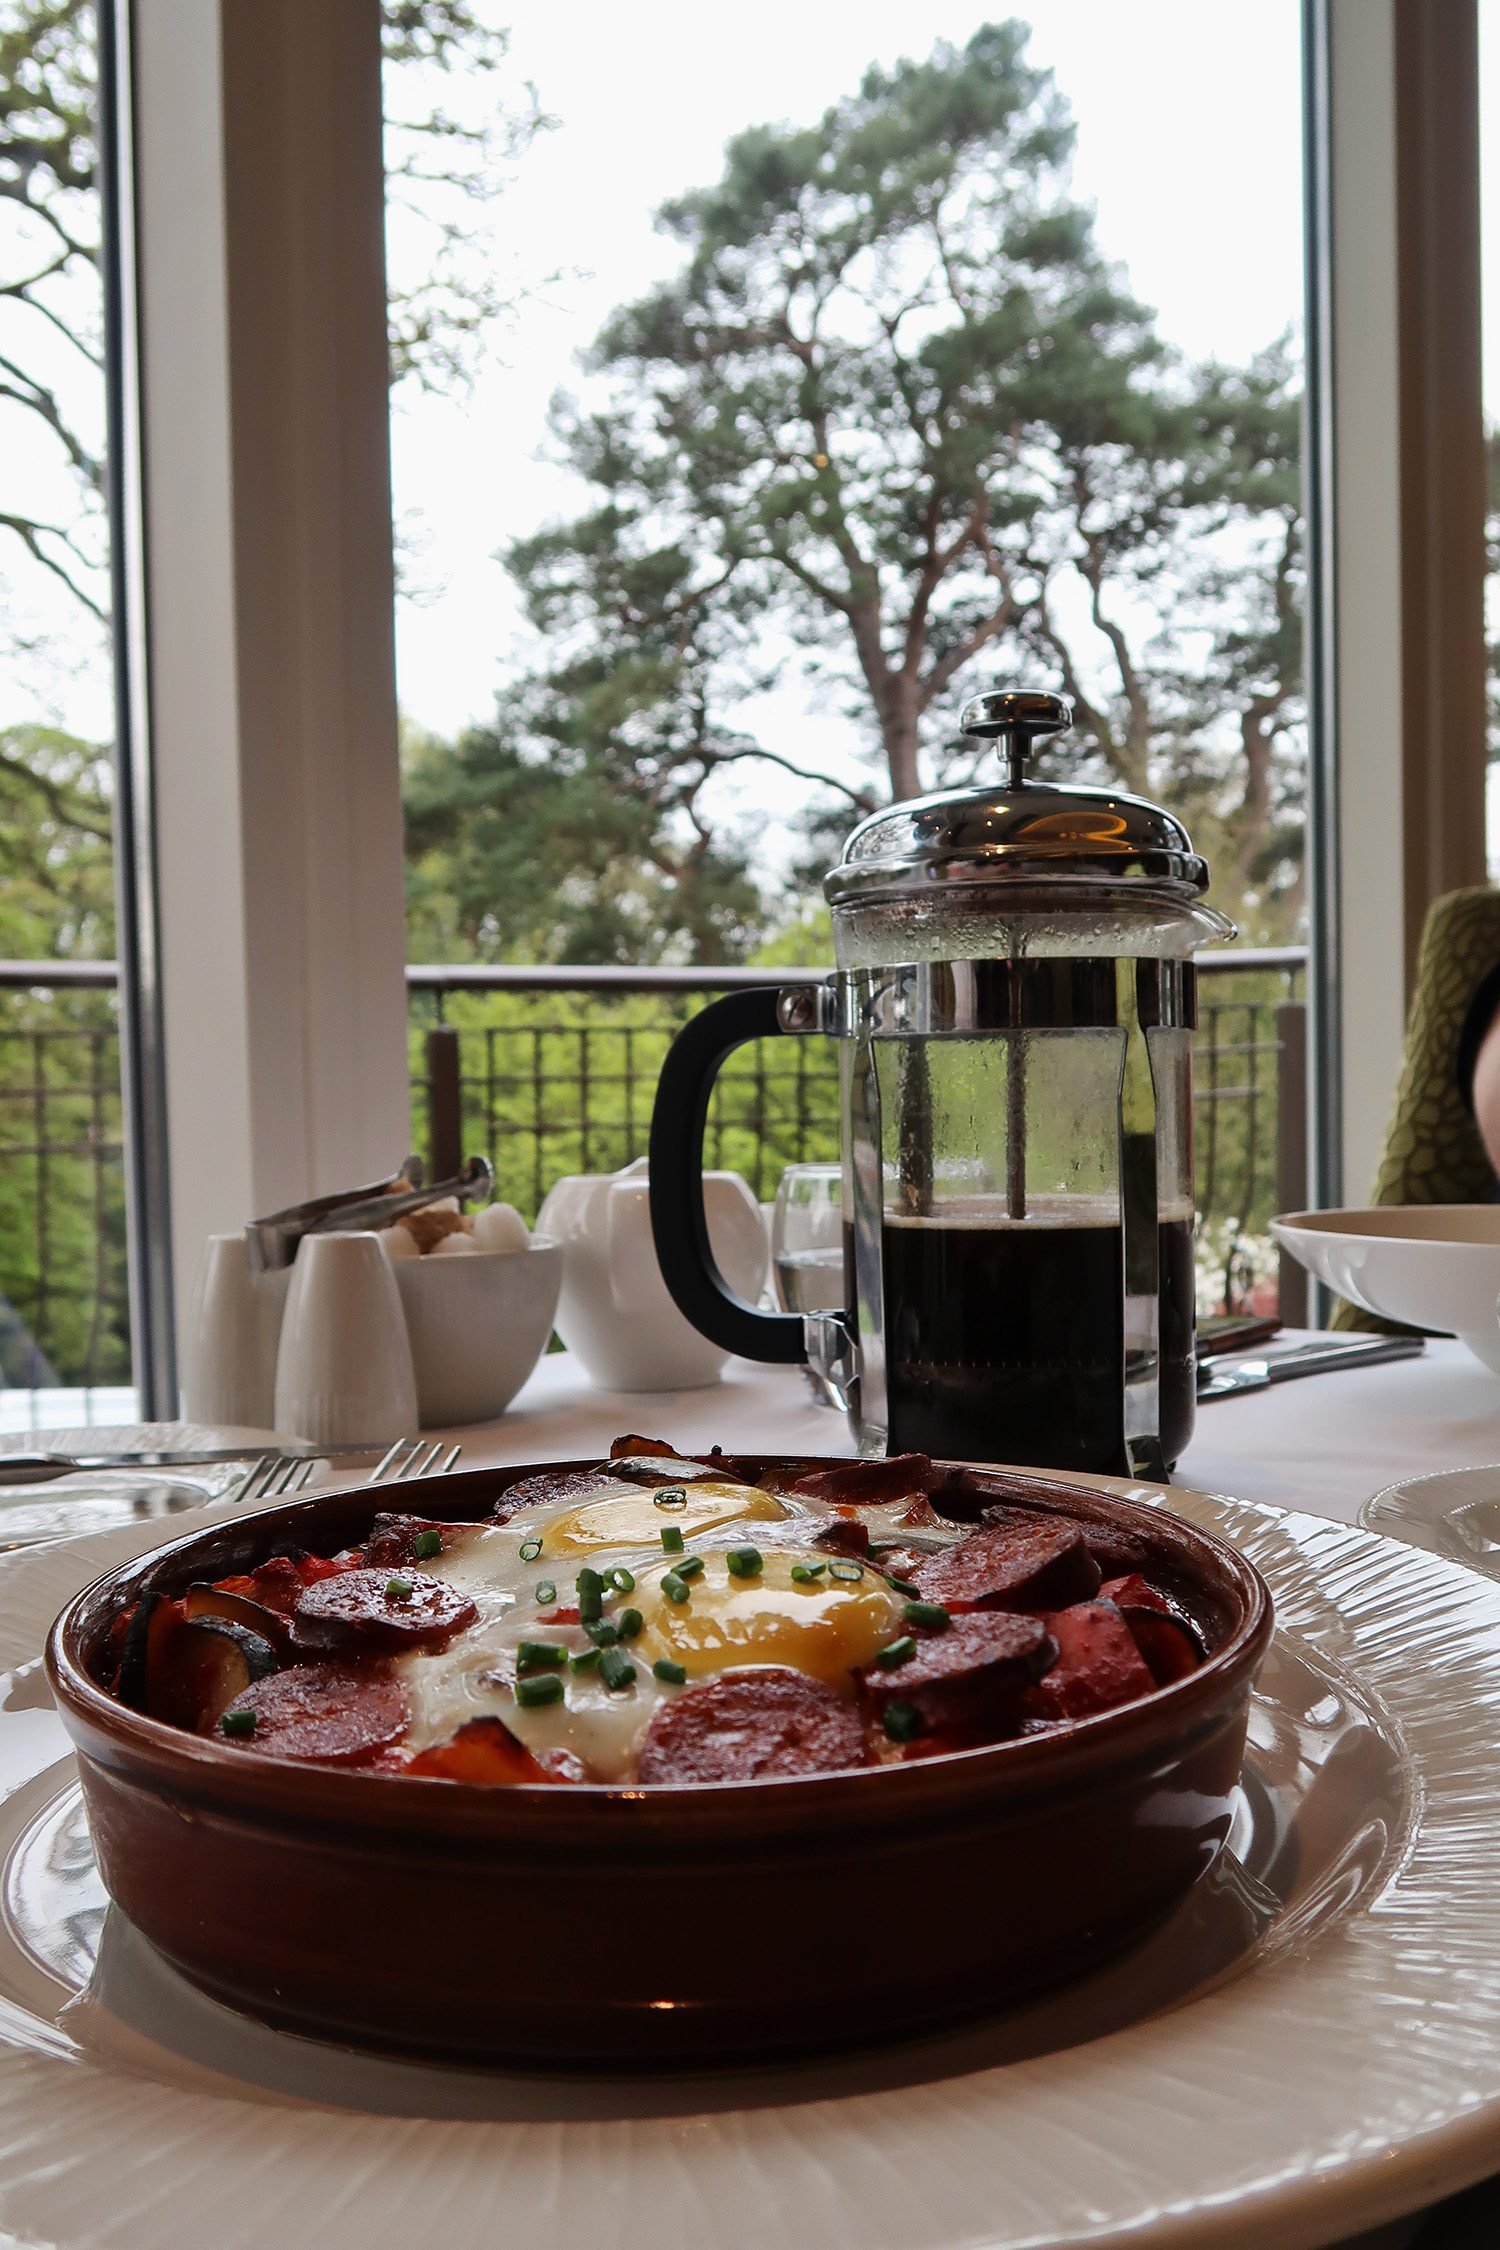 Bowl of chorizo and eggs with a pot of coffee and in the background the window looks out into the gardens